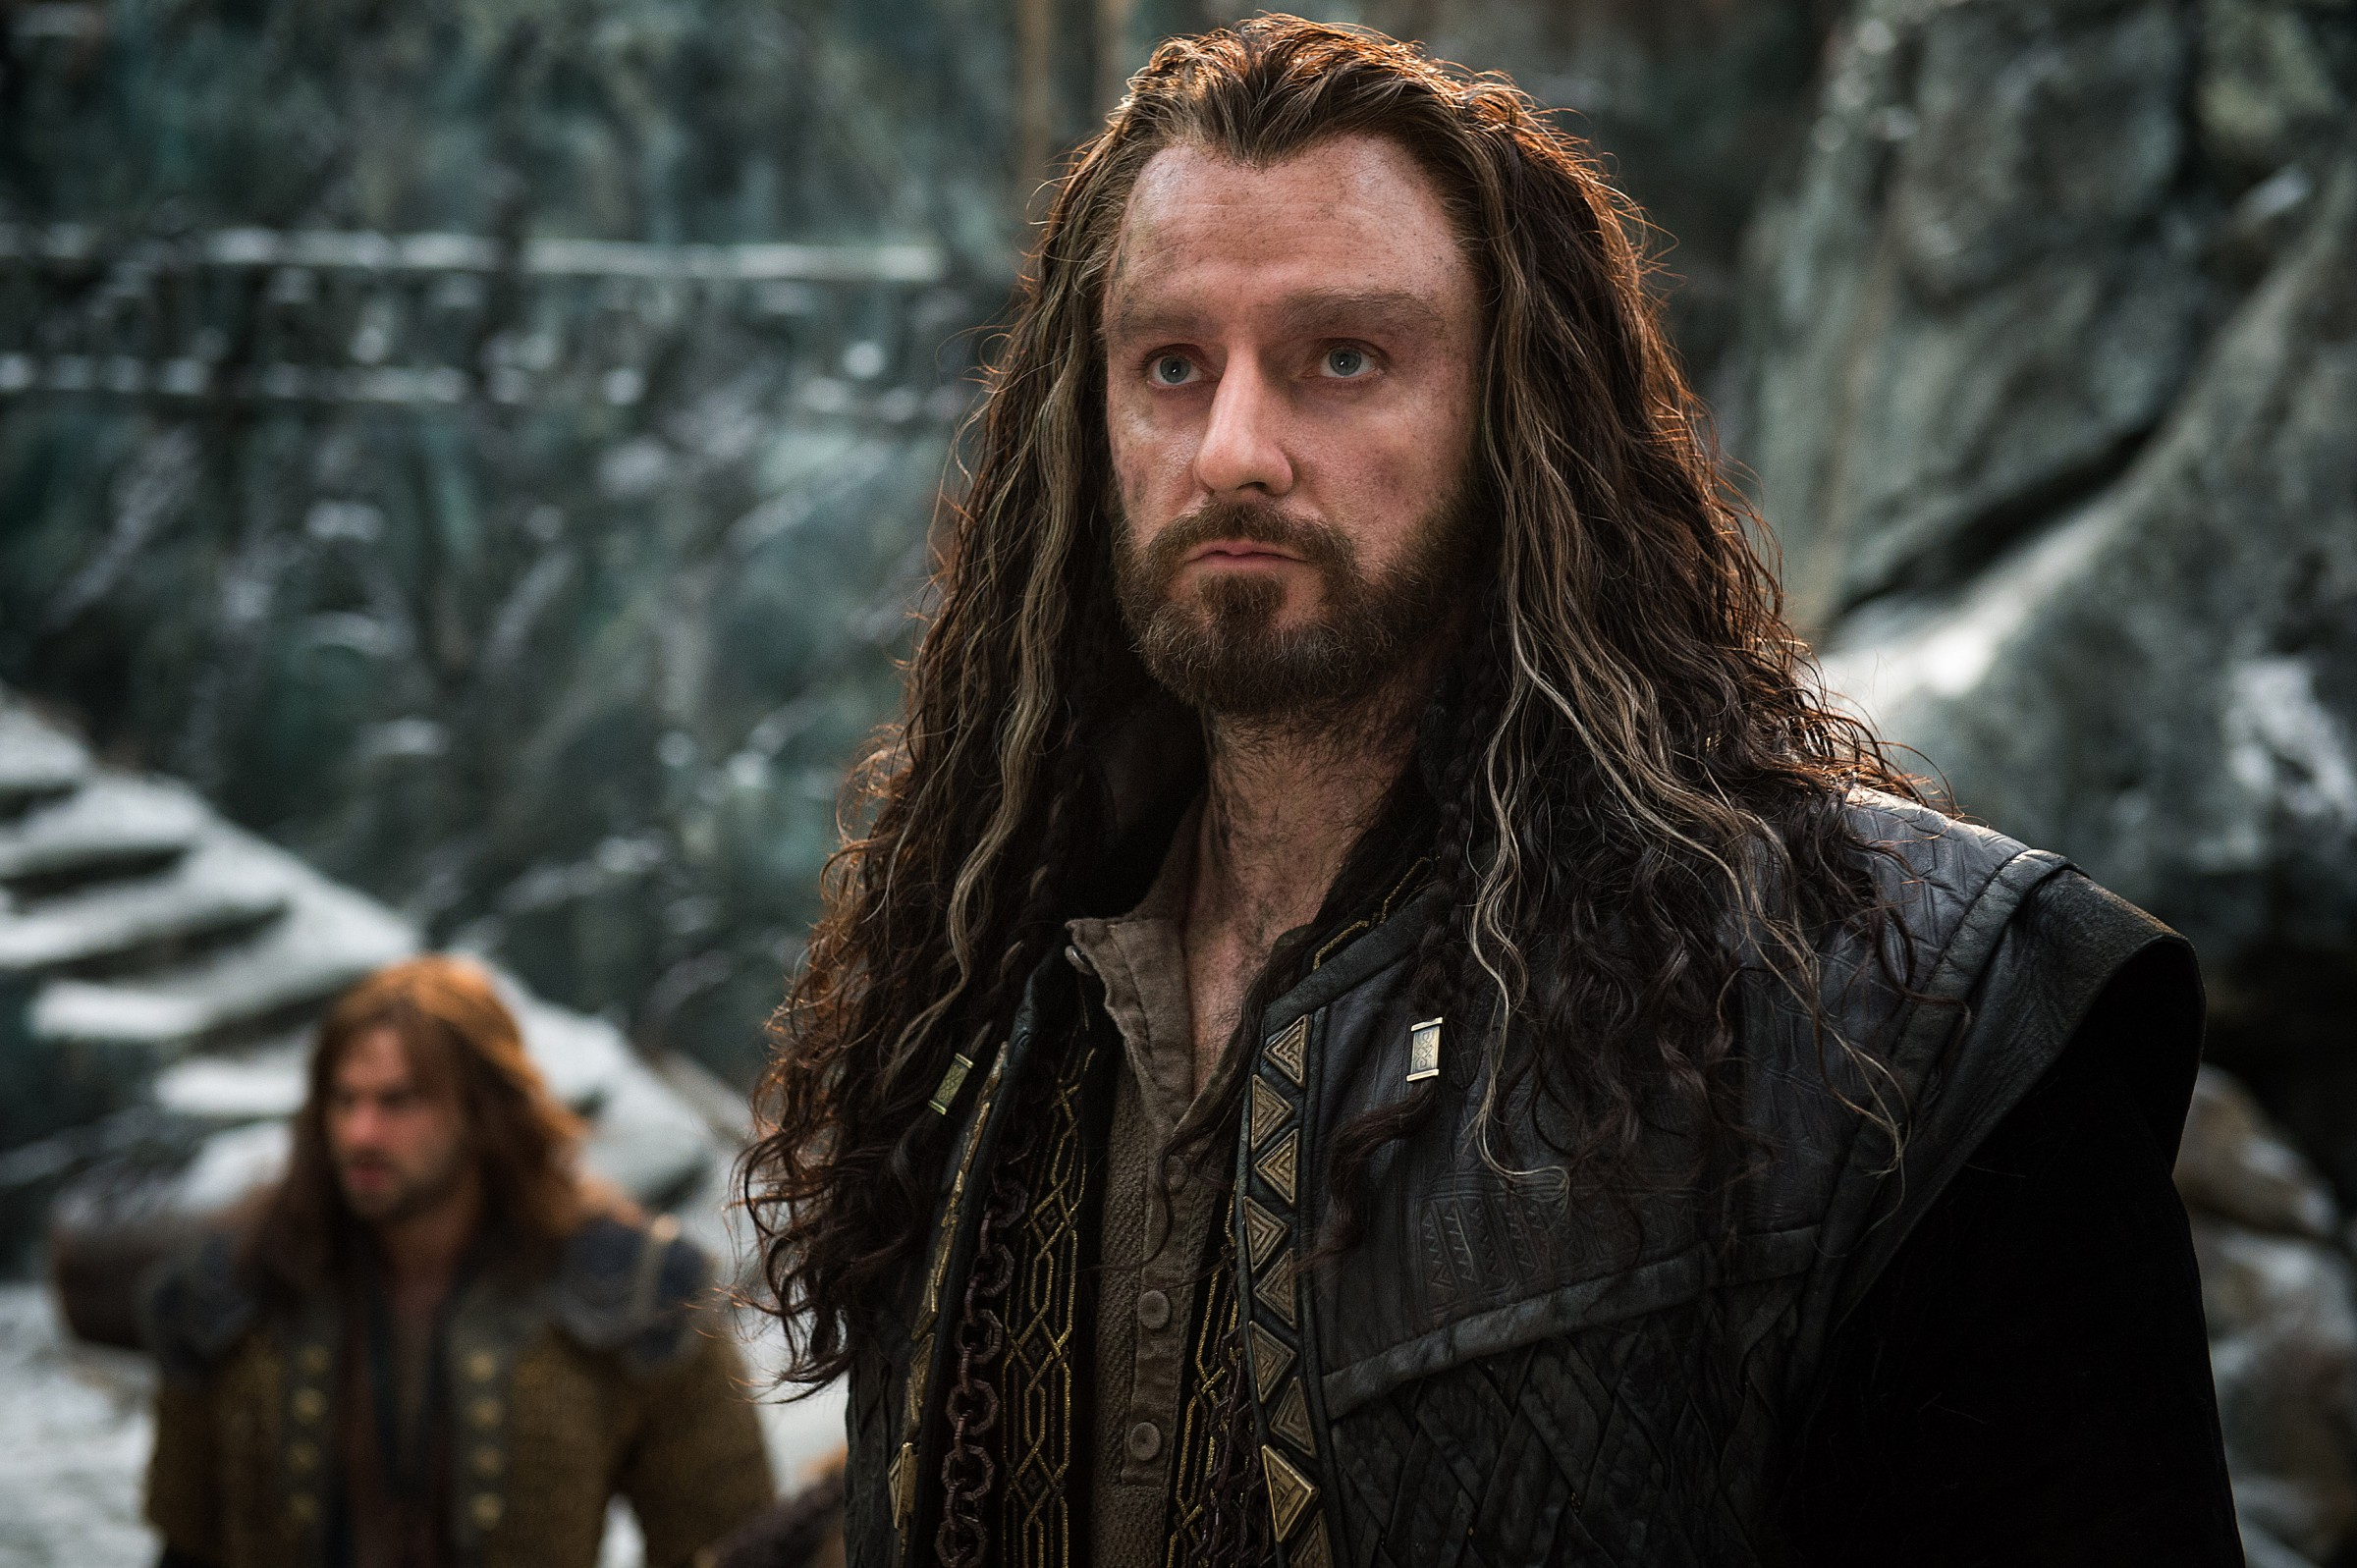 The Hobbit The Battle of the Five Armies-PHOTOS-04DEZEMBRO2014-04